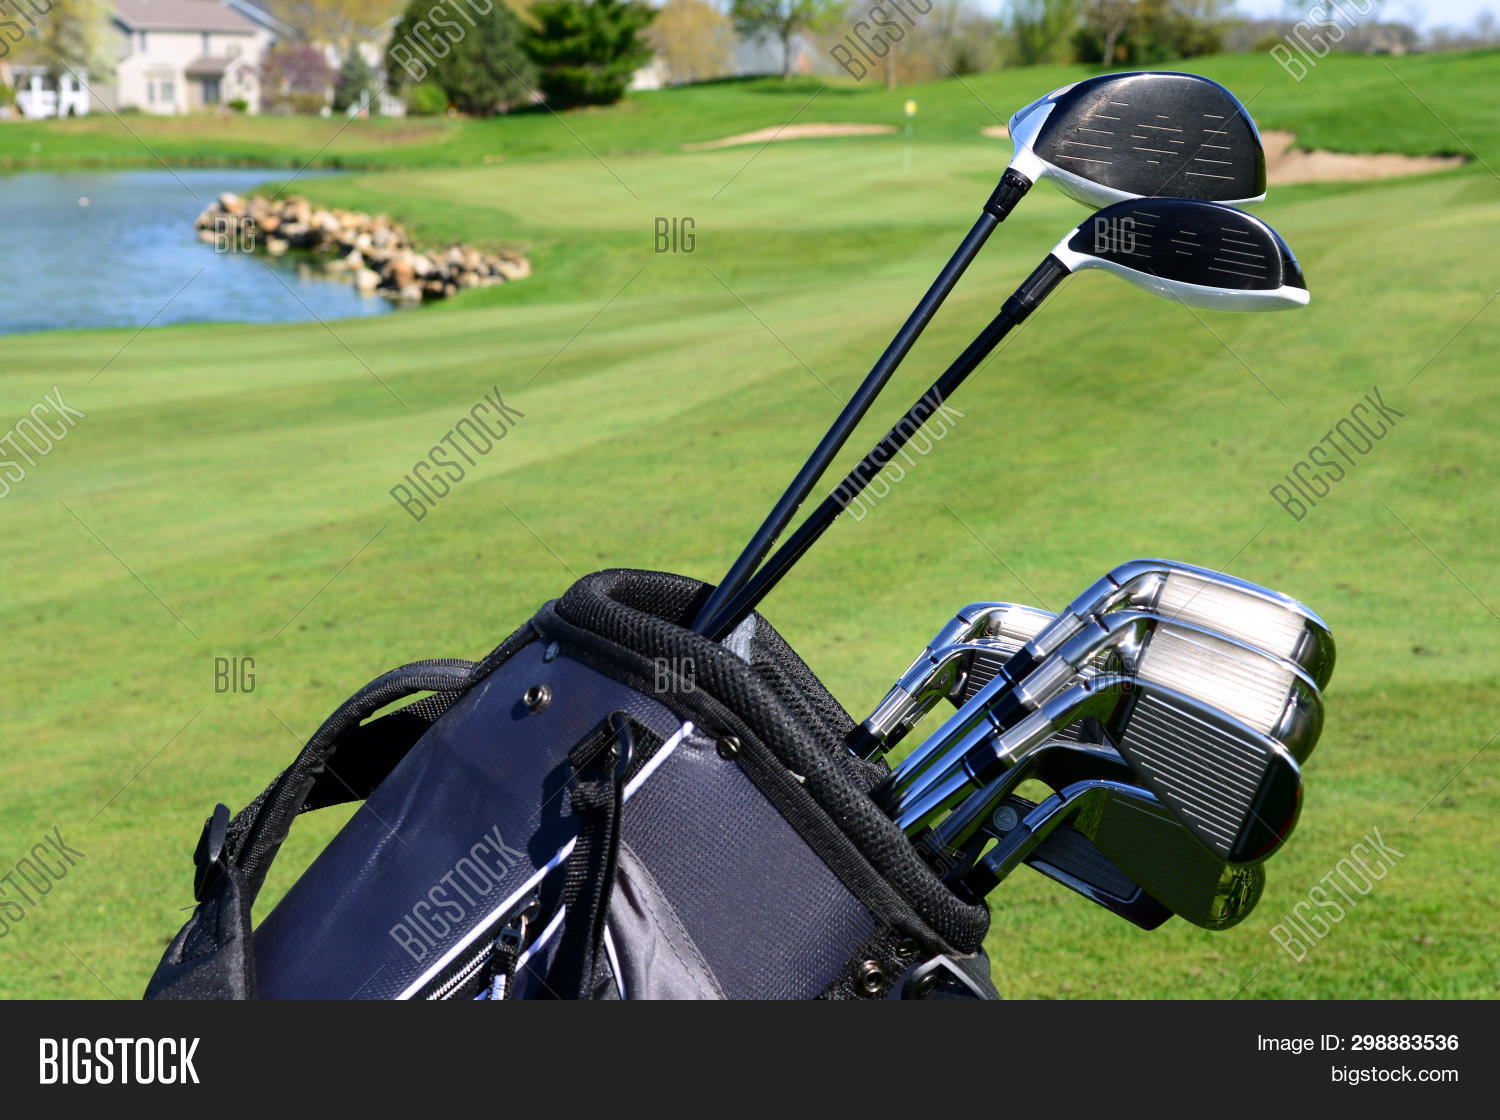 A set of golf clubs standing in a fairway on a scenic golf course with a lake and the green behind t